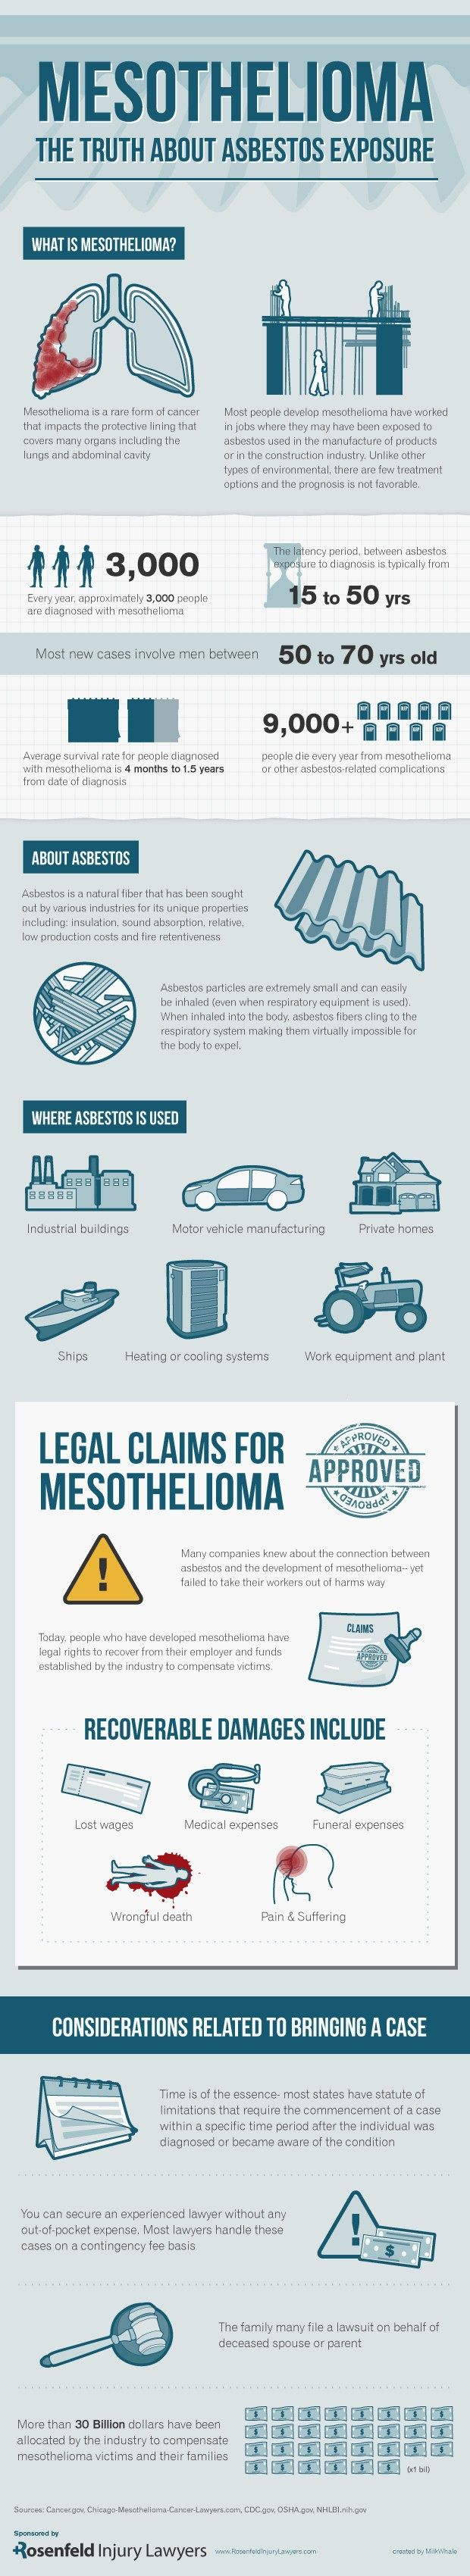 11 best asbestos process images on Pinterest | Recycling, Upcycle ...